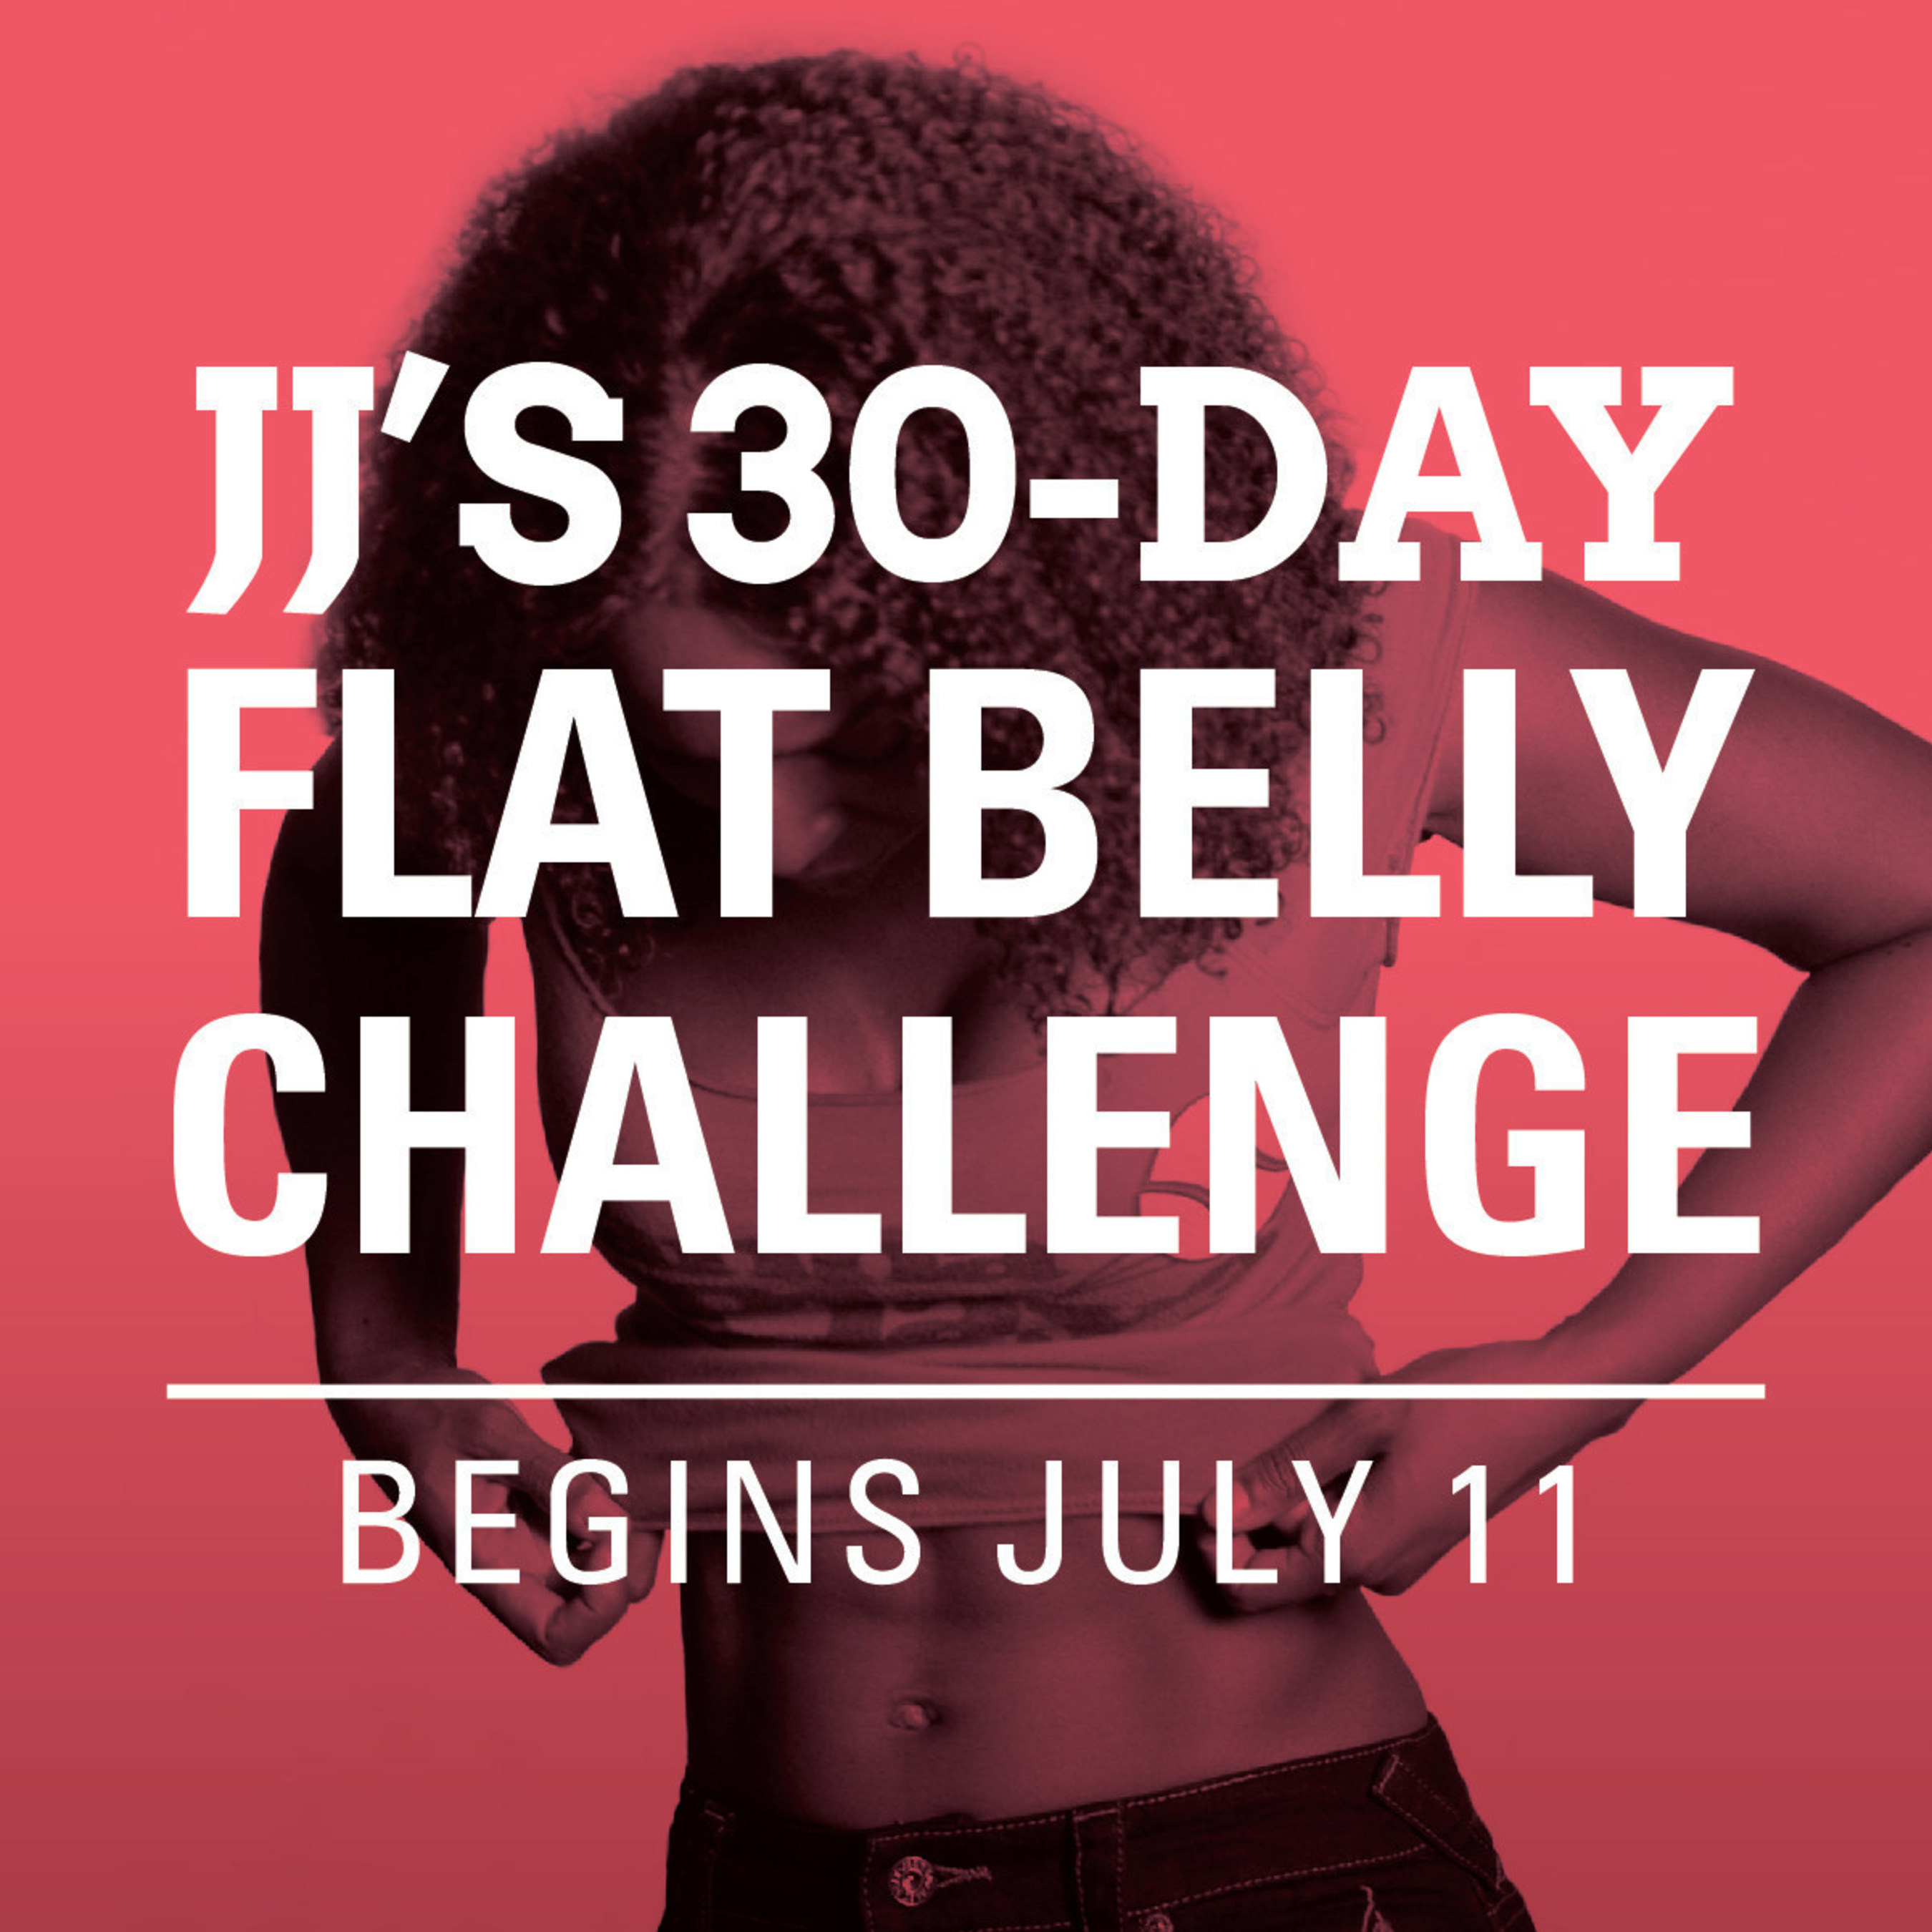 JJ Smith Leads Nationwide 30-Day Flat Belly Challenge on